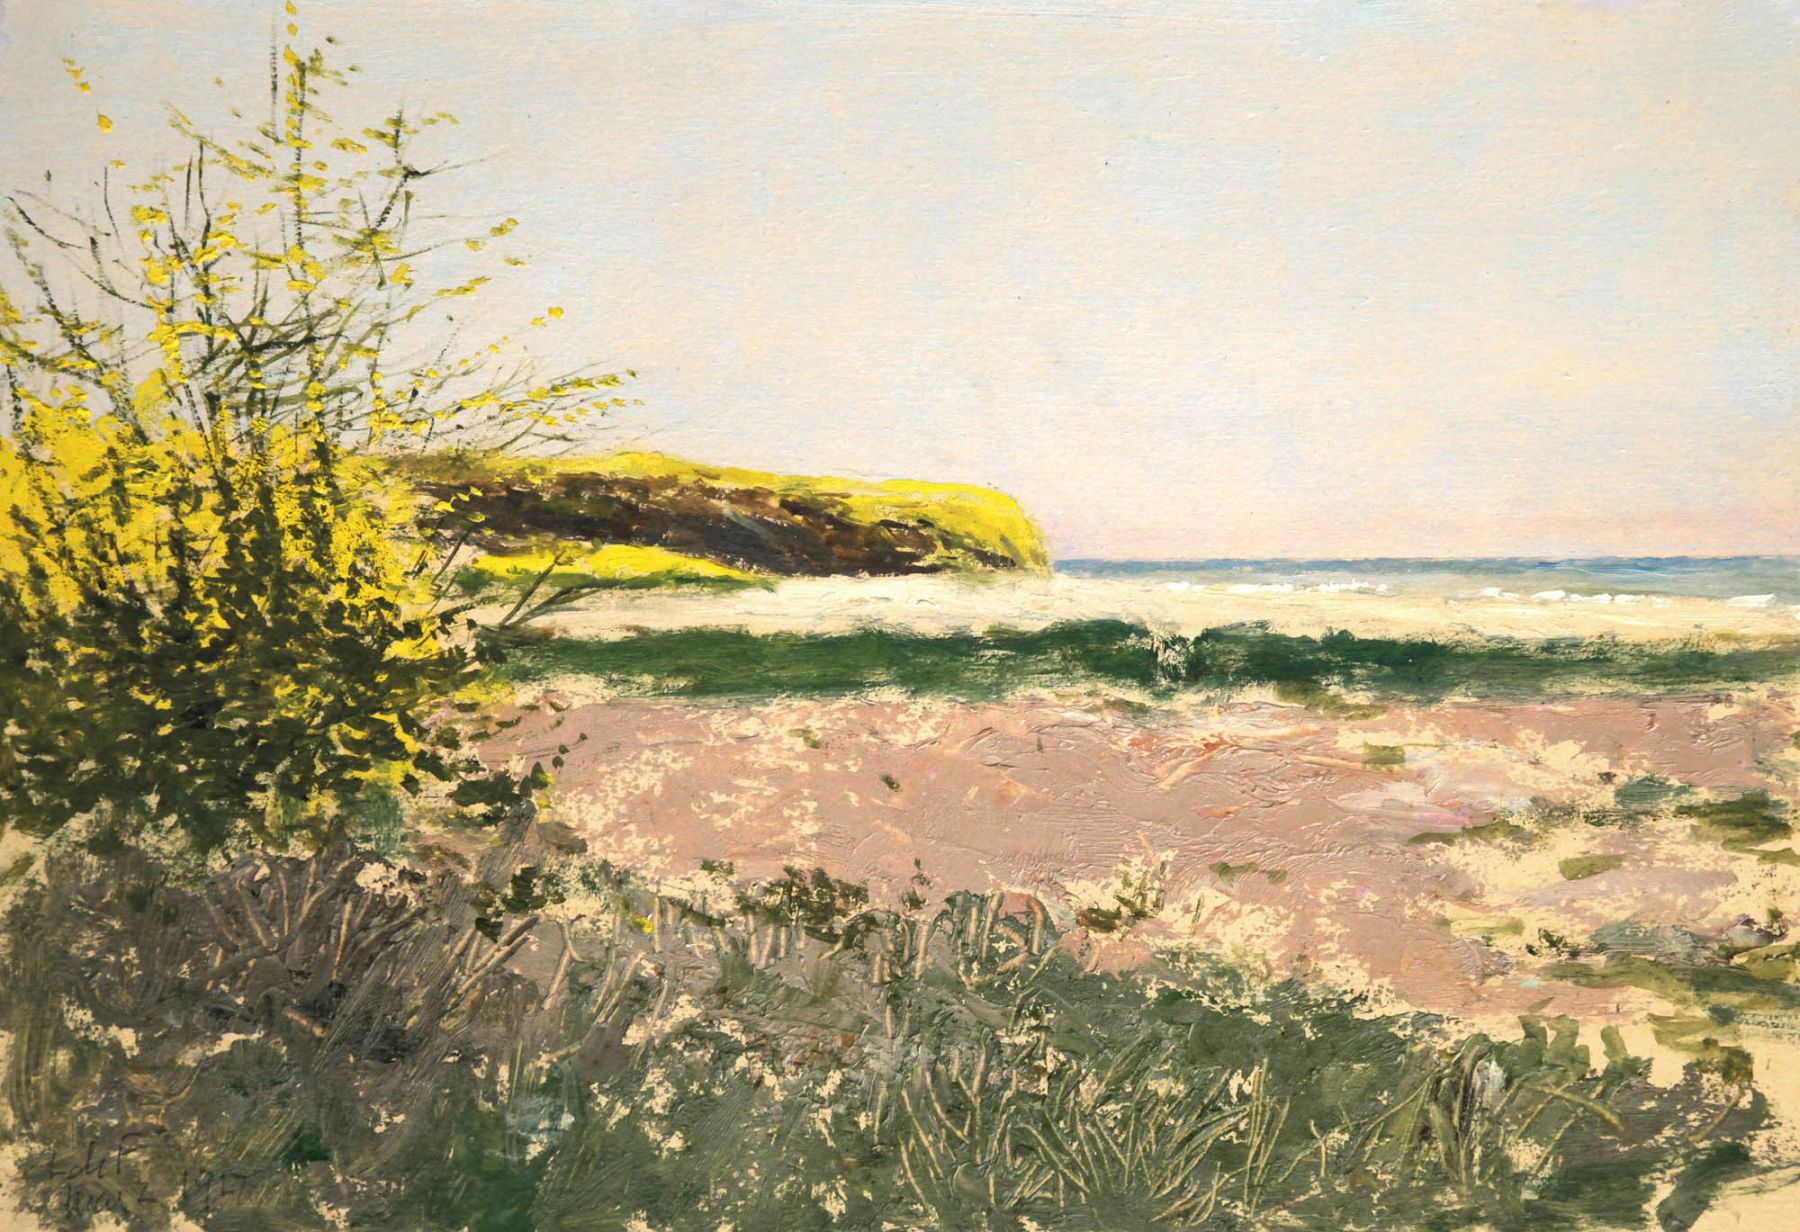 Lockwood De Forest, Wild Mustard and Fennel Along the Beach